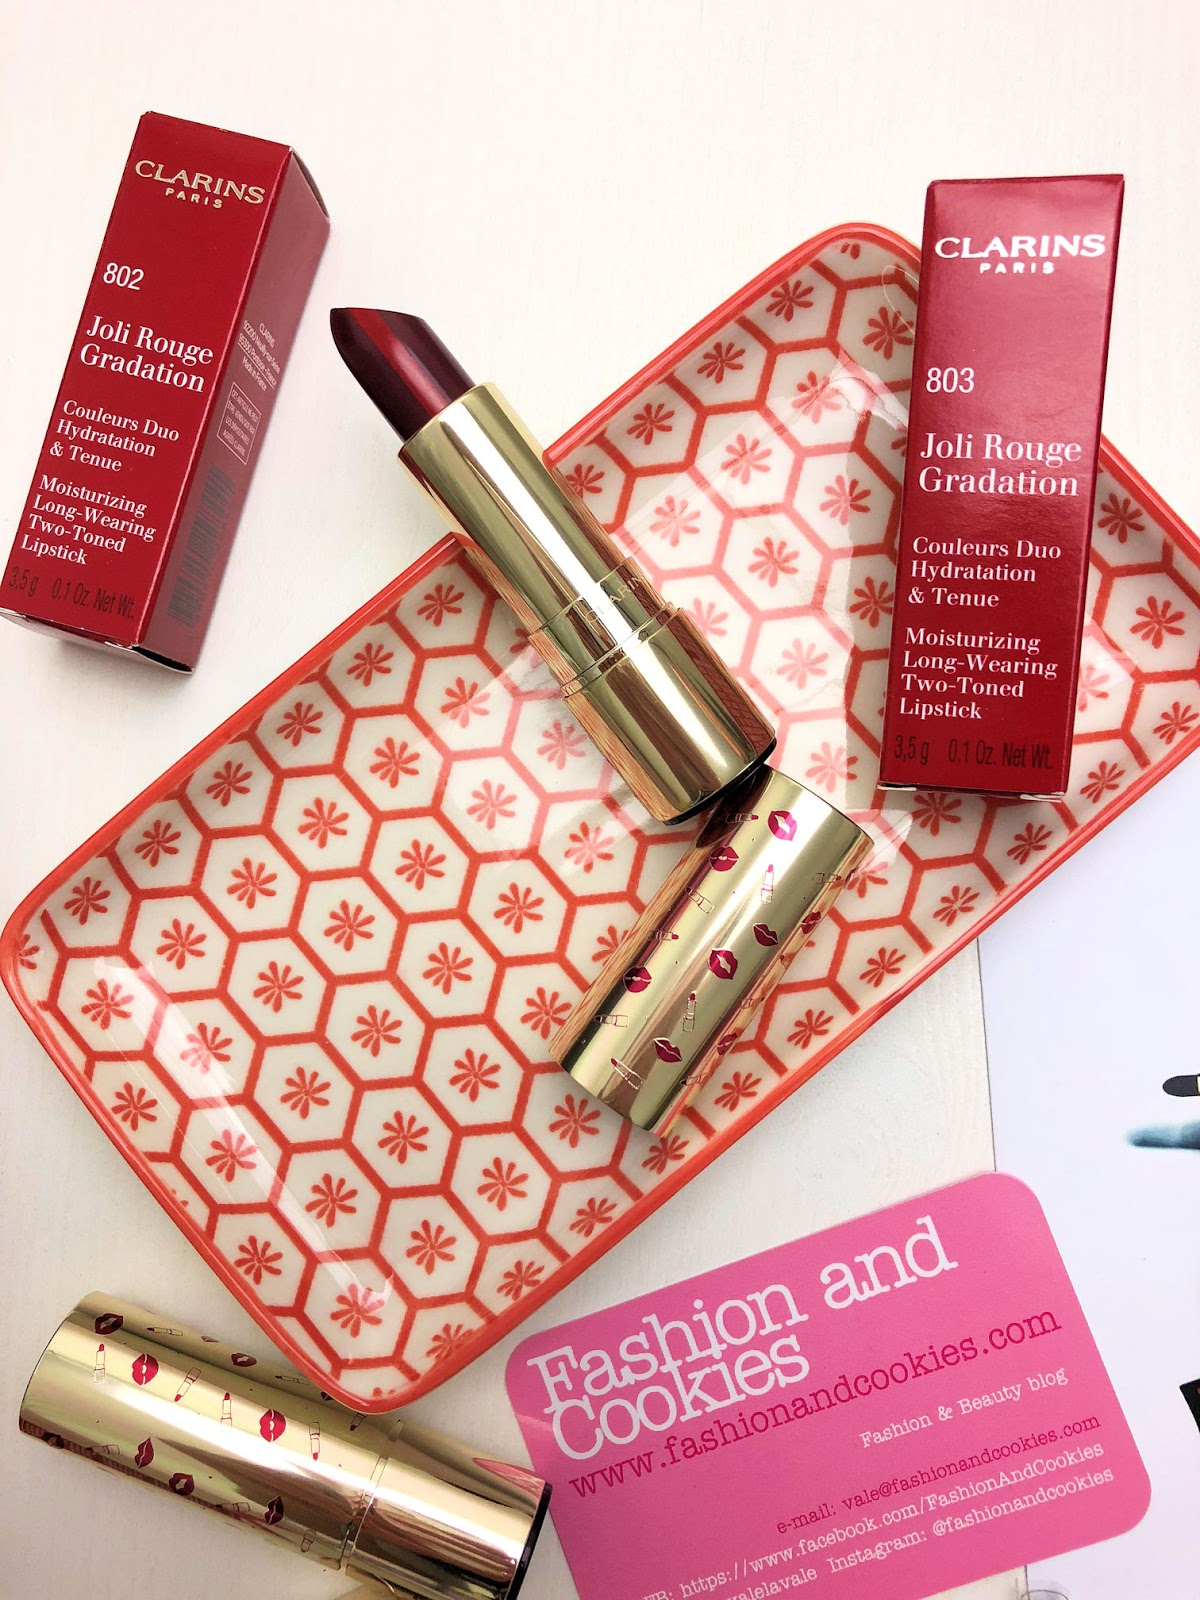 Clarins Joli Rouge & Black collezione makeup edizione limitata per l'Autunno su Fashion and Cookies beauty blog, beauty blogger